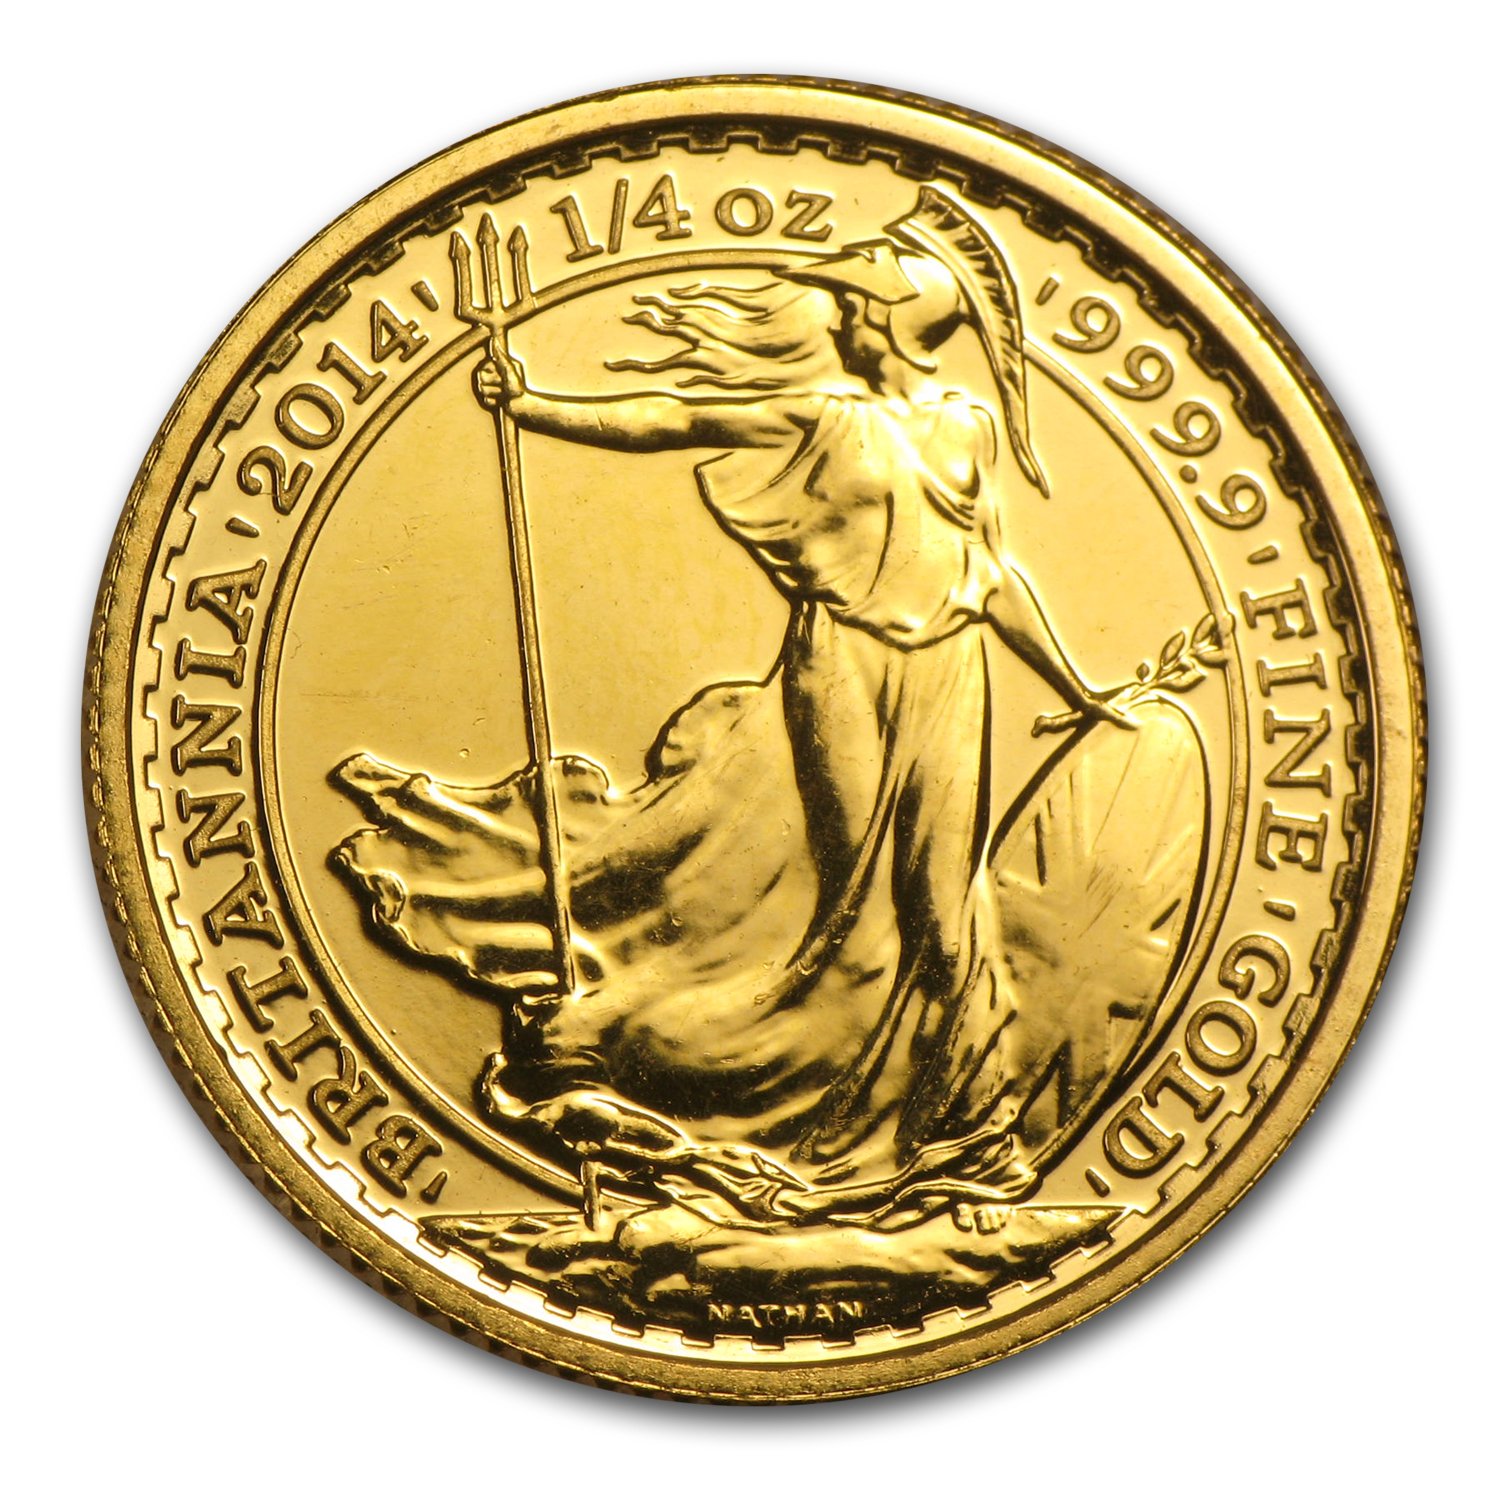 2014 Great Britain 1/4 oz Gold Britannia BU